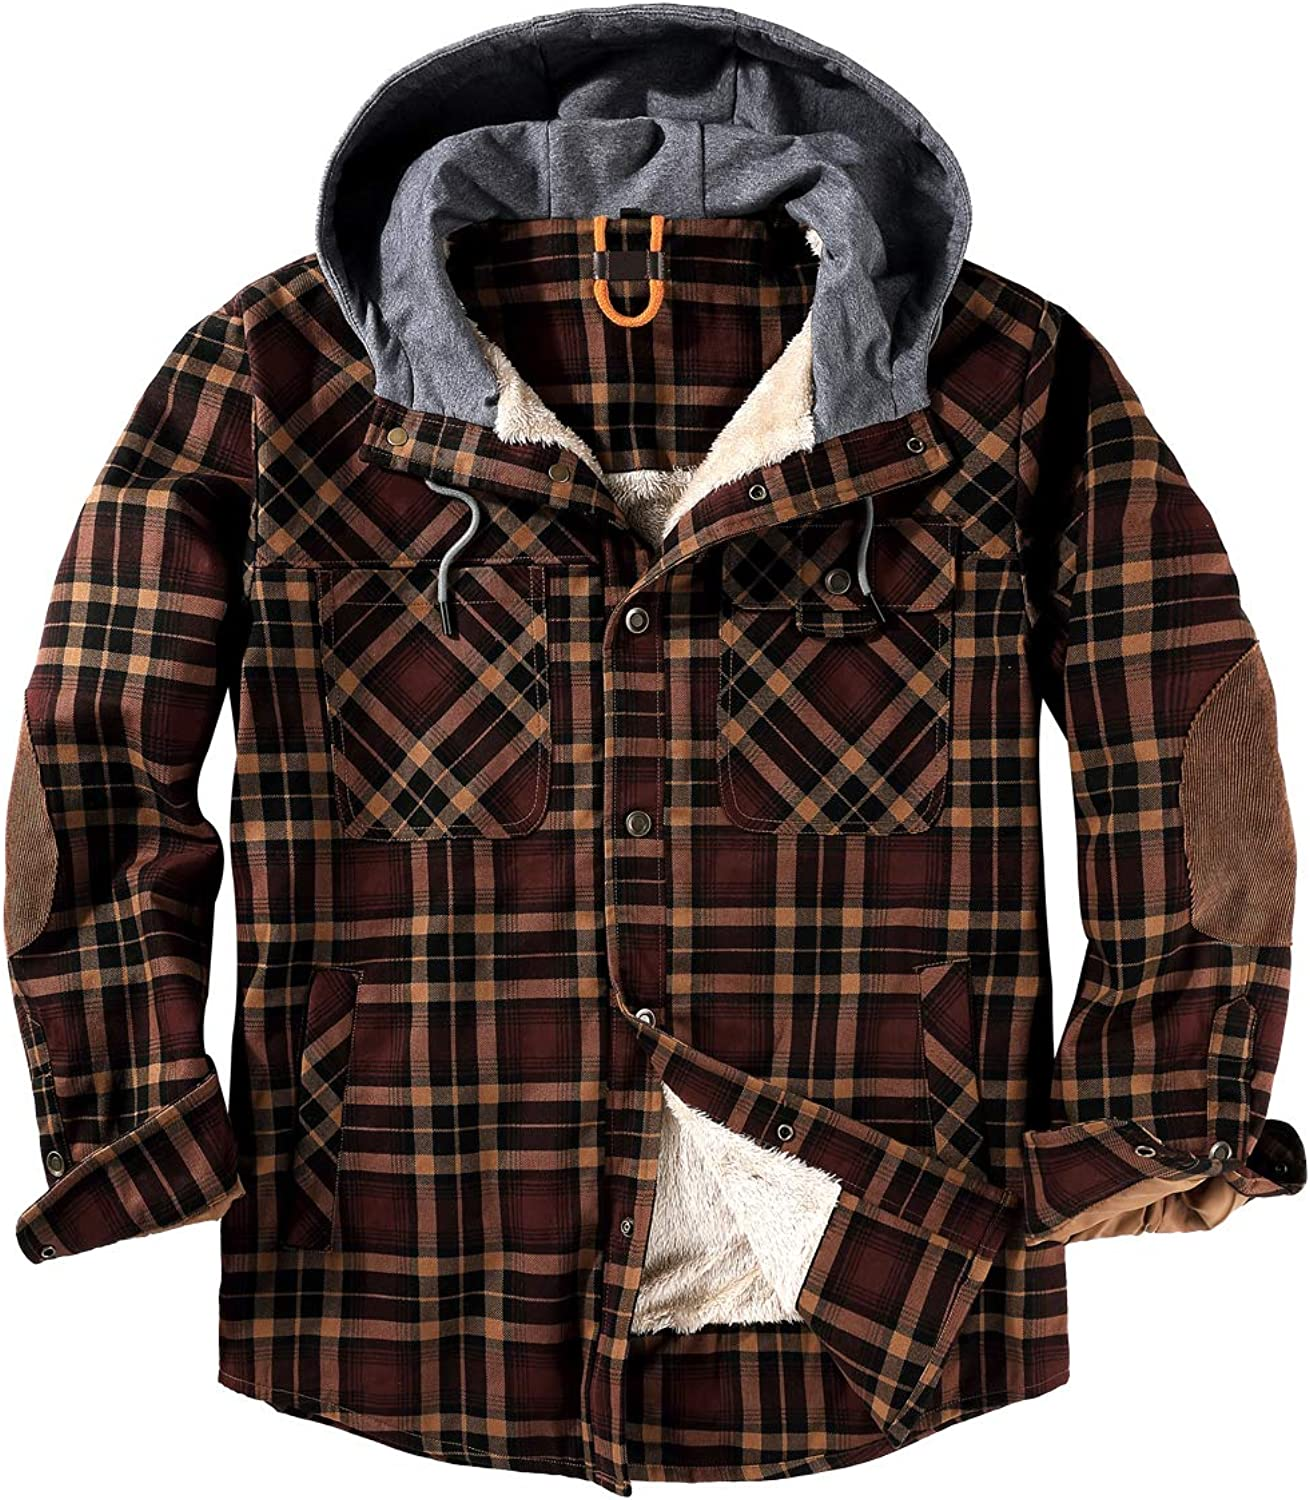 In stock NEWHALL Men's Classic Plaid Long Buttons Sleeve Warm Camping SEAL limited product Lin